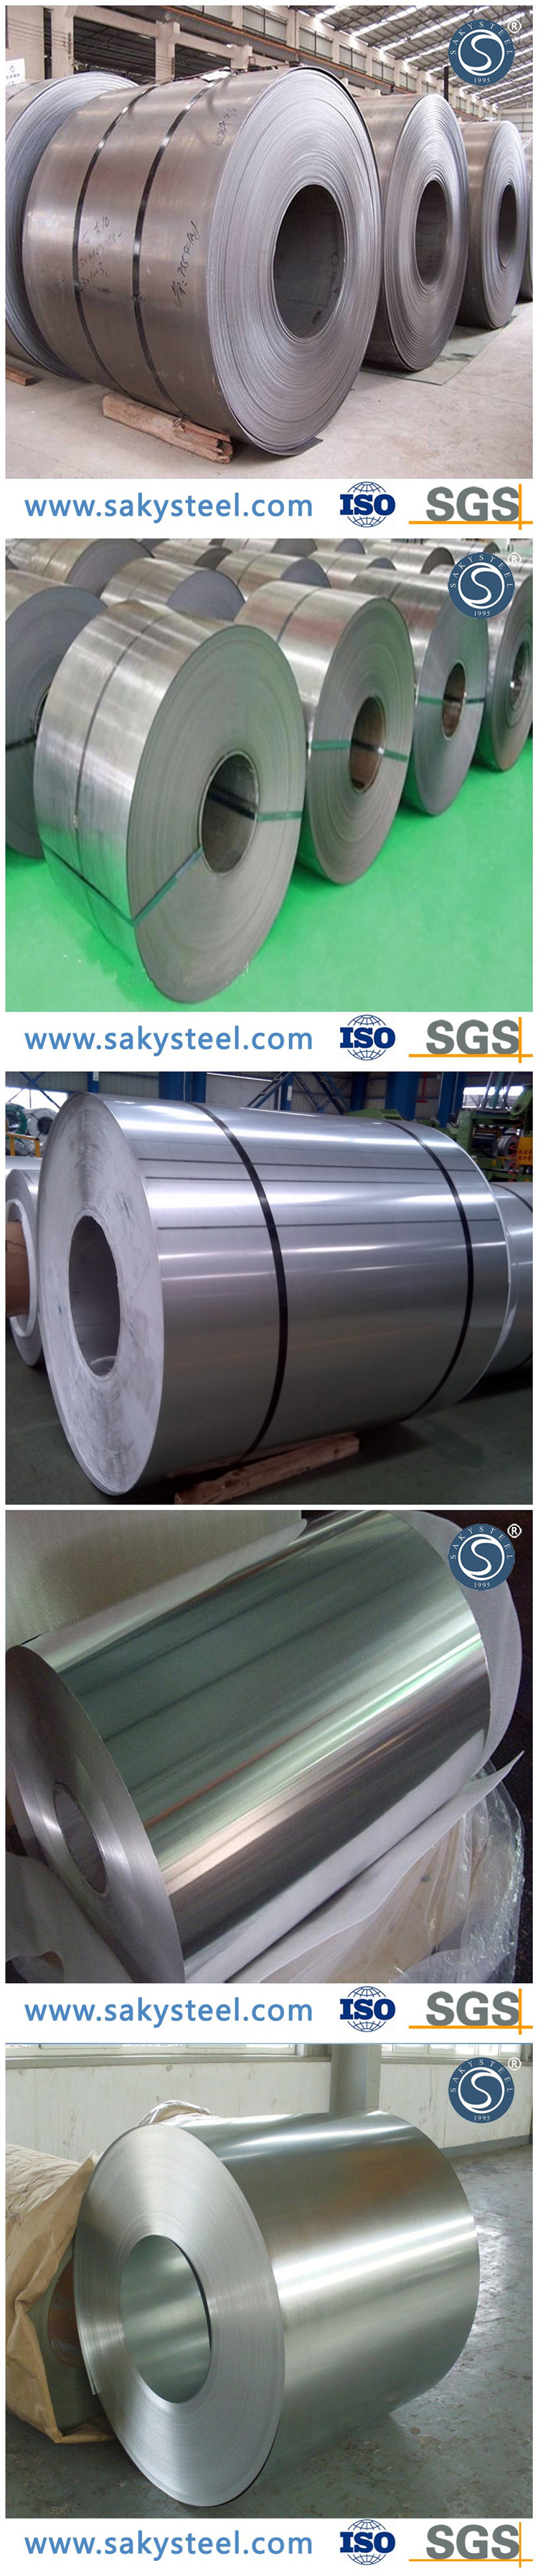 201 stainless steel coil Japan price